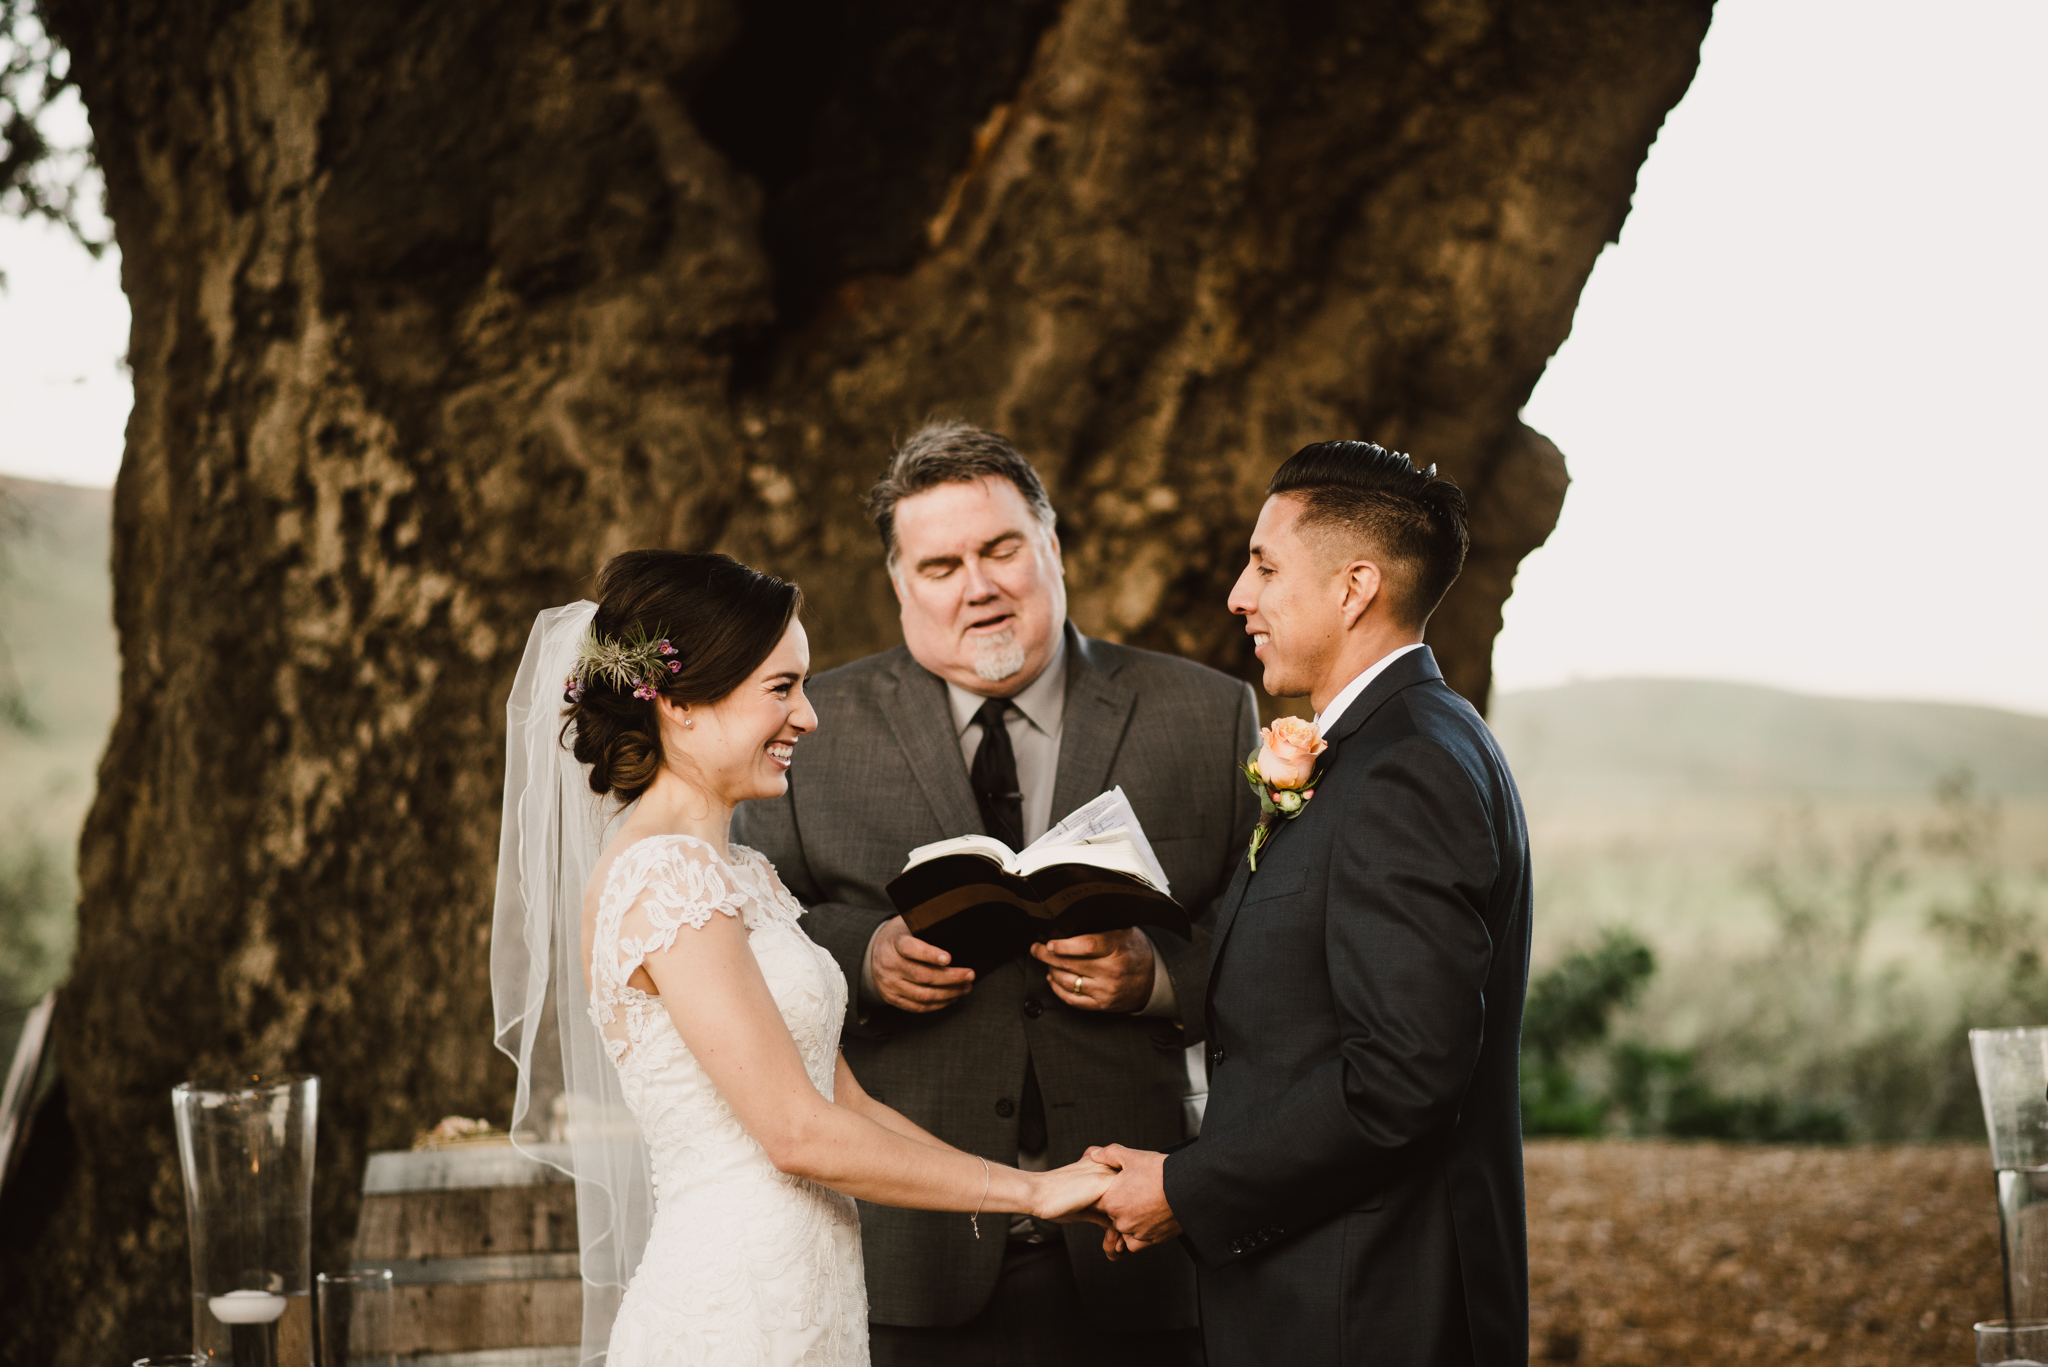 ©Isaiah-&-Taylor-Photography---Highland-Springs-Resort-Wedding,-Cherry-Valley-102.jpg